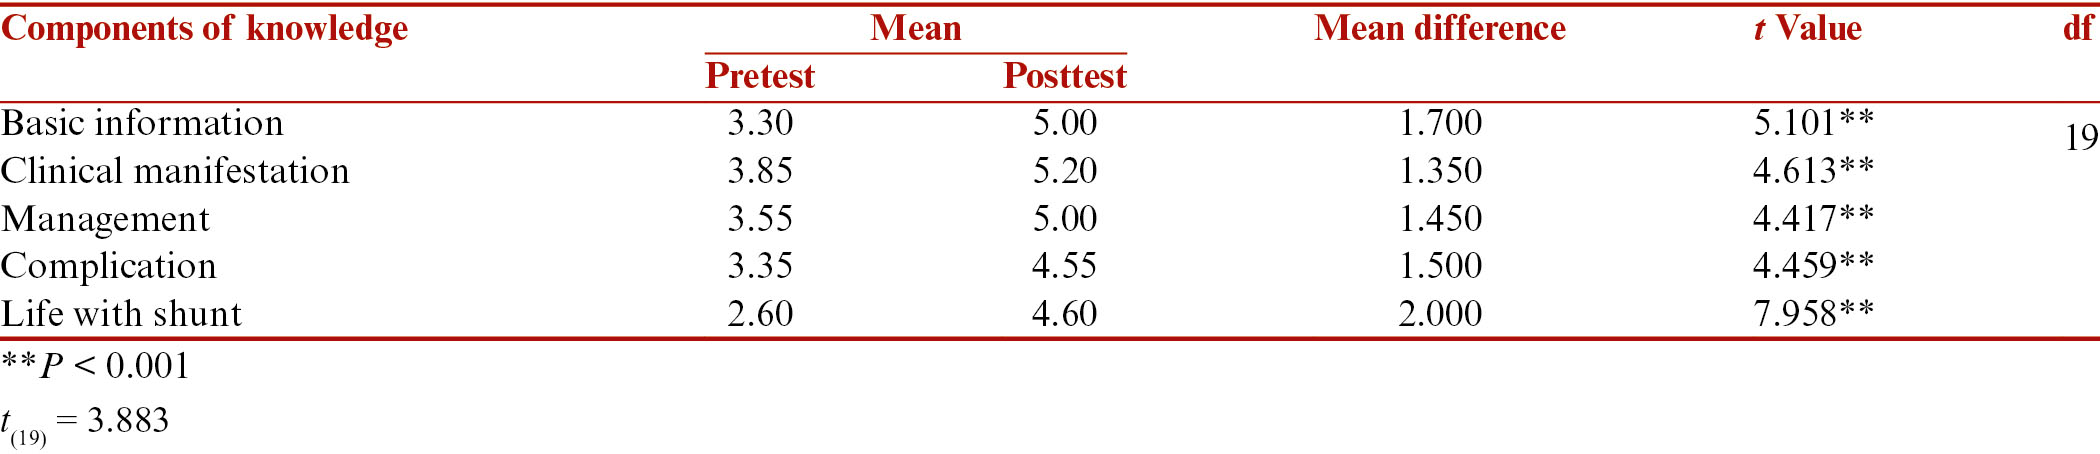 Table 3: Comparison of mean pre-test and post test score of each components of knowledge (n = 20)